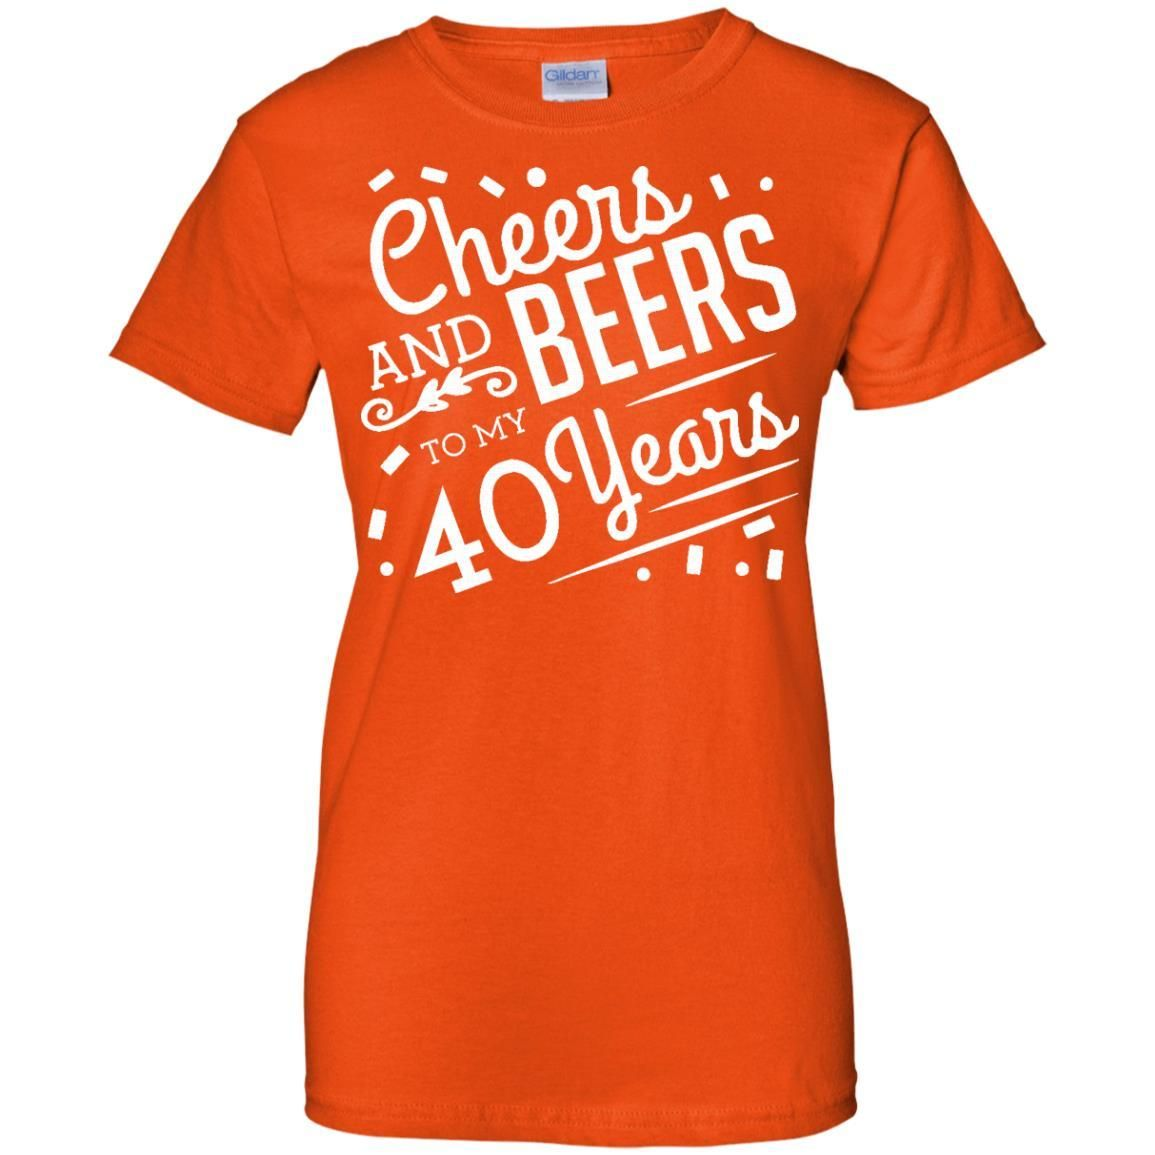 Cheers And Beers To My 40 Years - 40th Birthday Gift T-Shirt